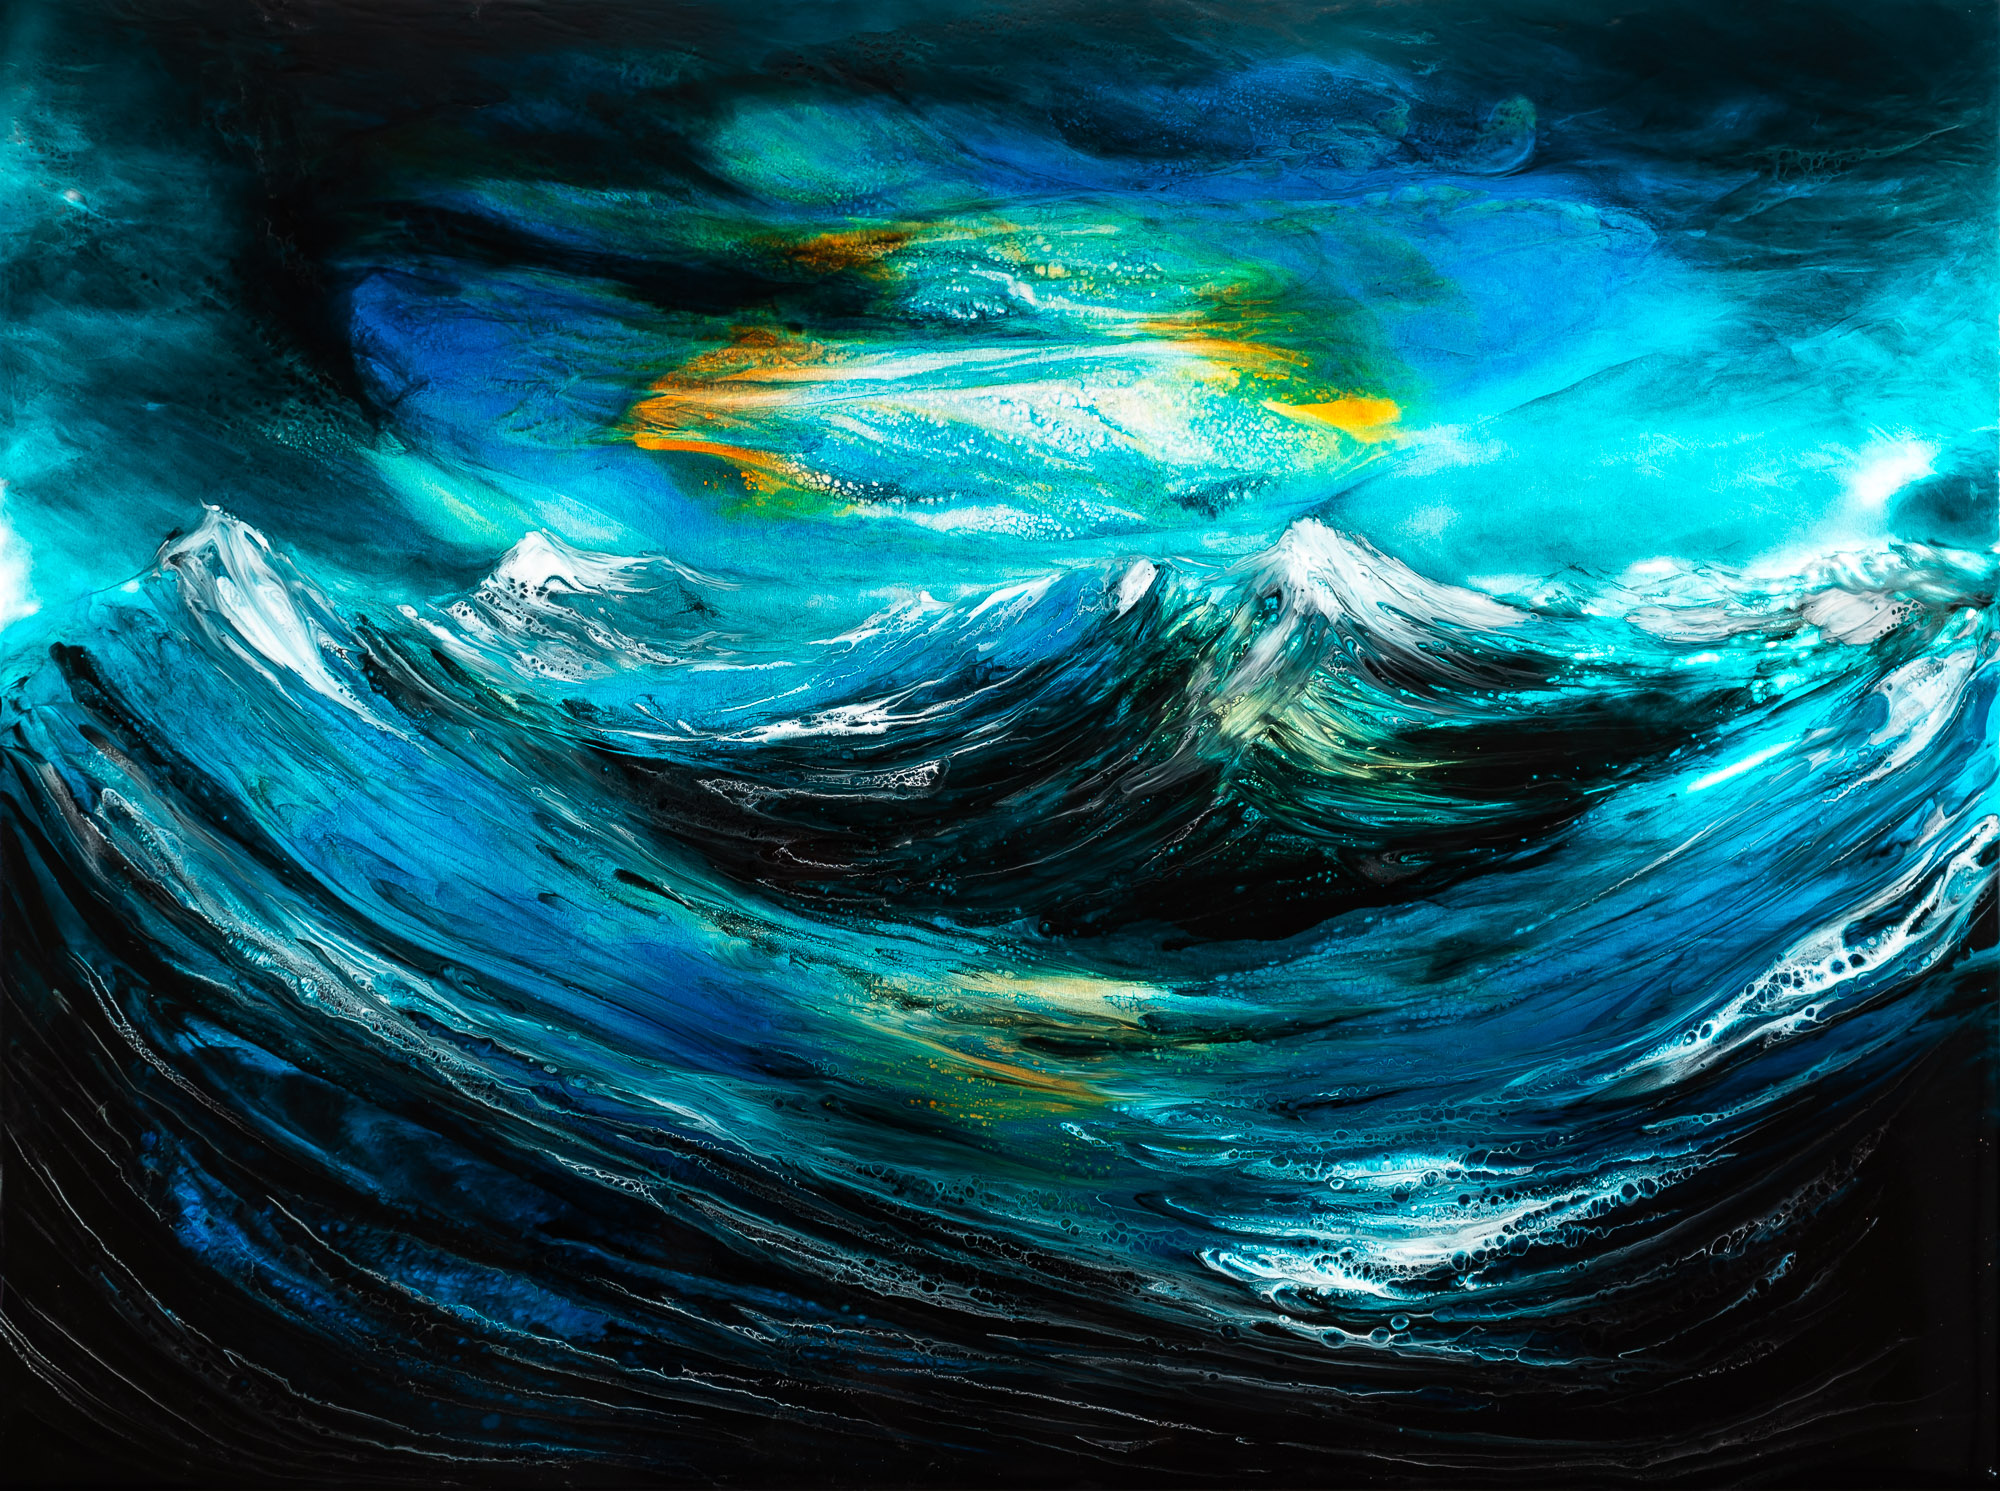 White Caps by Paul Kenton, UK Contemporary artist, an Original Resin Seascape Painting from his Seascapes and Mountainscapes art collection